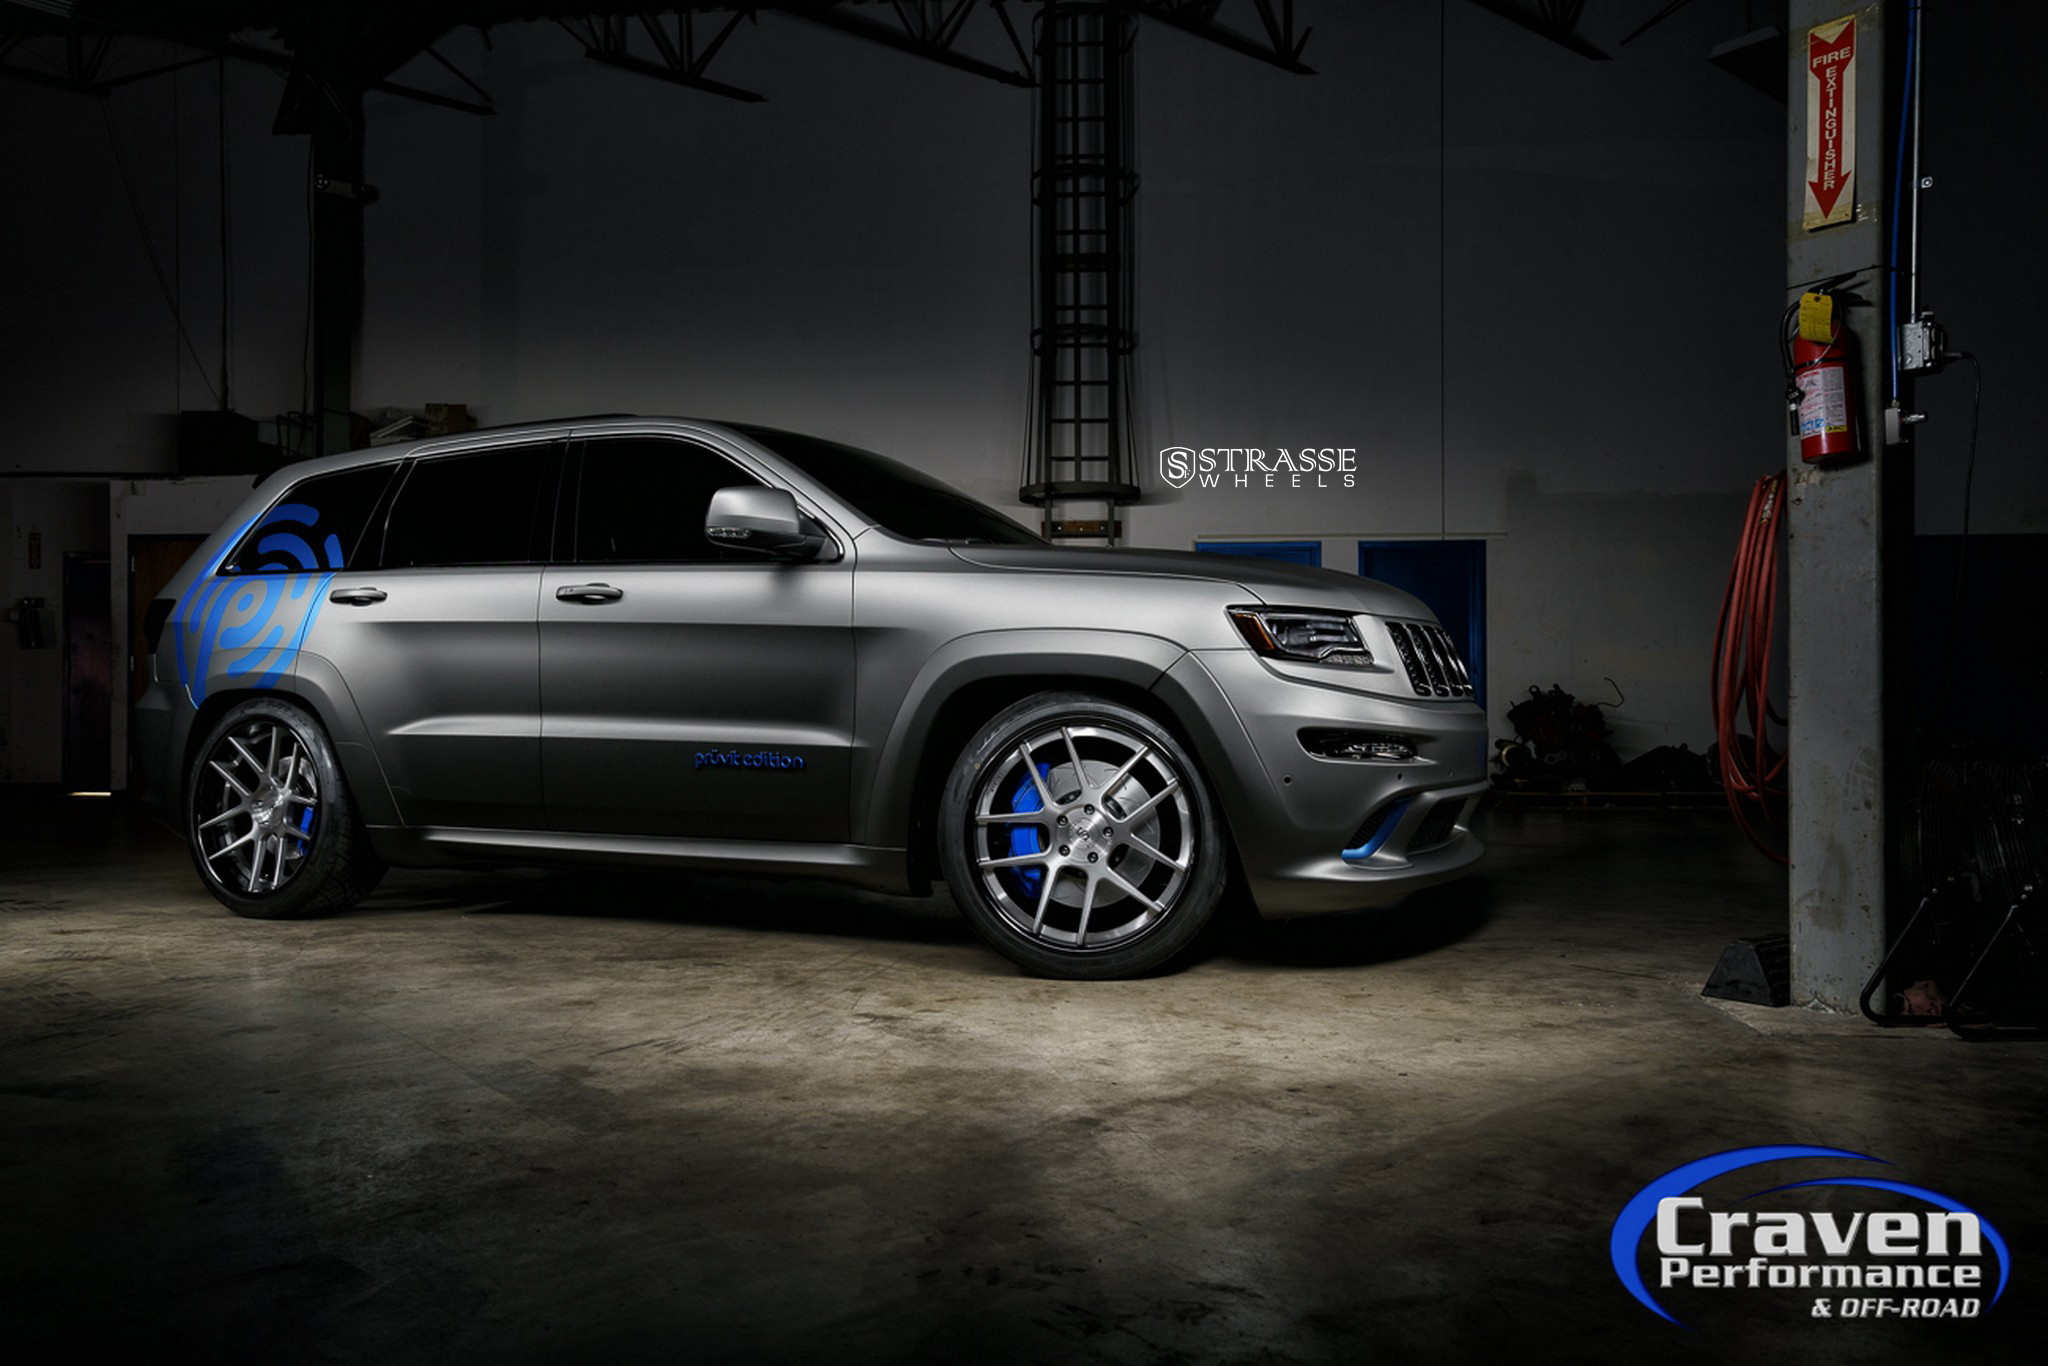 Jeep Grand Cherokee Srt Strasse Wheelsstrasse Wheels